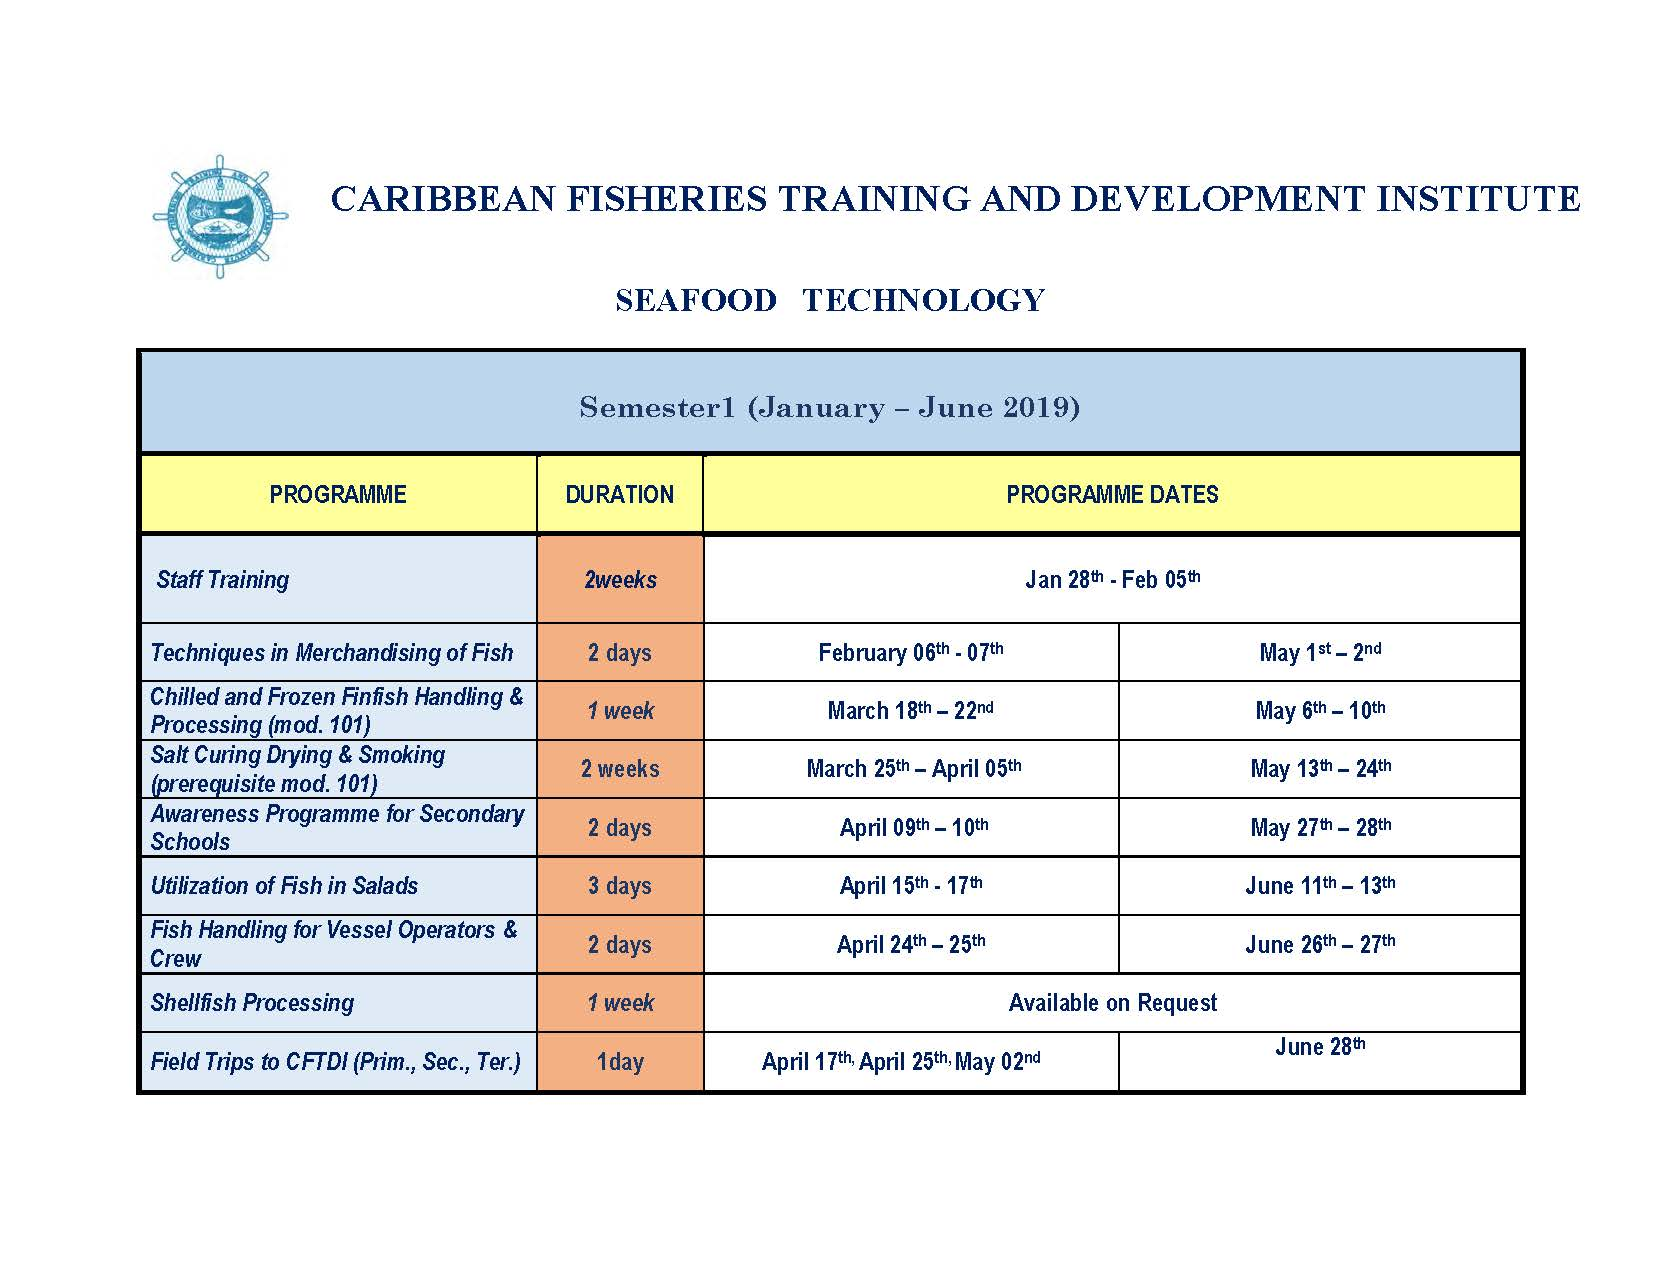 Seafood Processing semester 1 schedule 2019